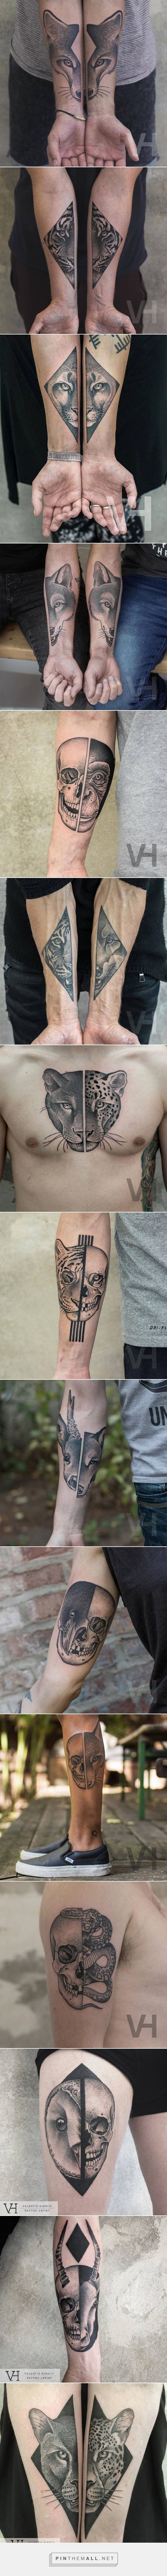 Split Animals Faces Tattoos Inked on Separate Sides – Fubiz Media - created via https://pinthemall.net